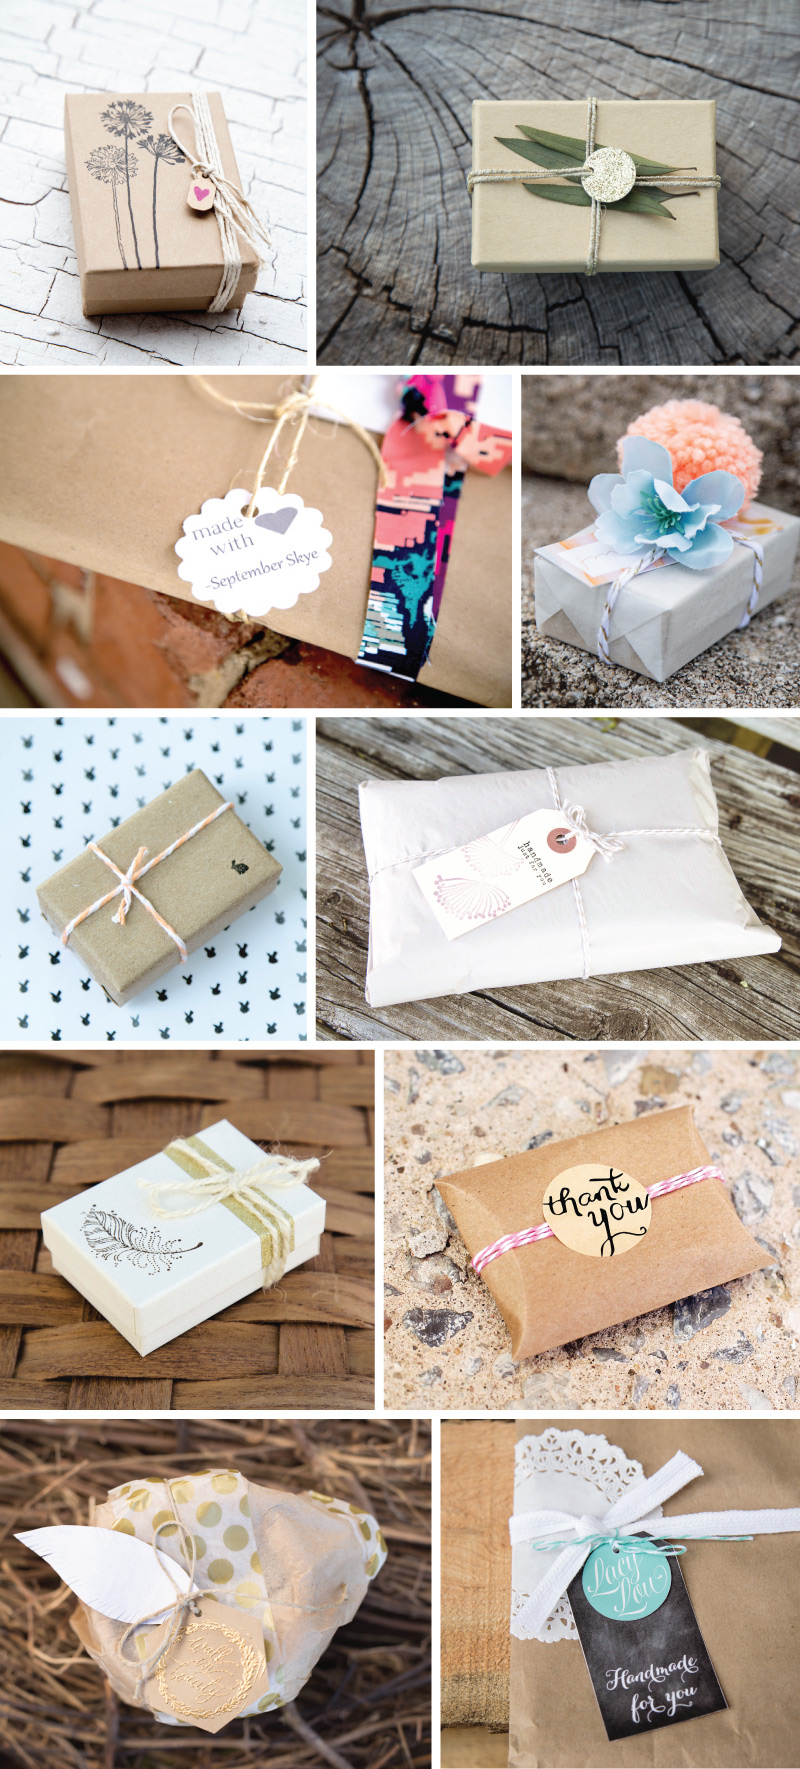 10 Cute Homemade Gift Wrapping Ideas